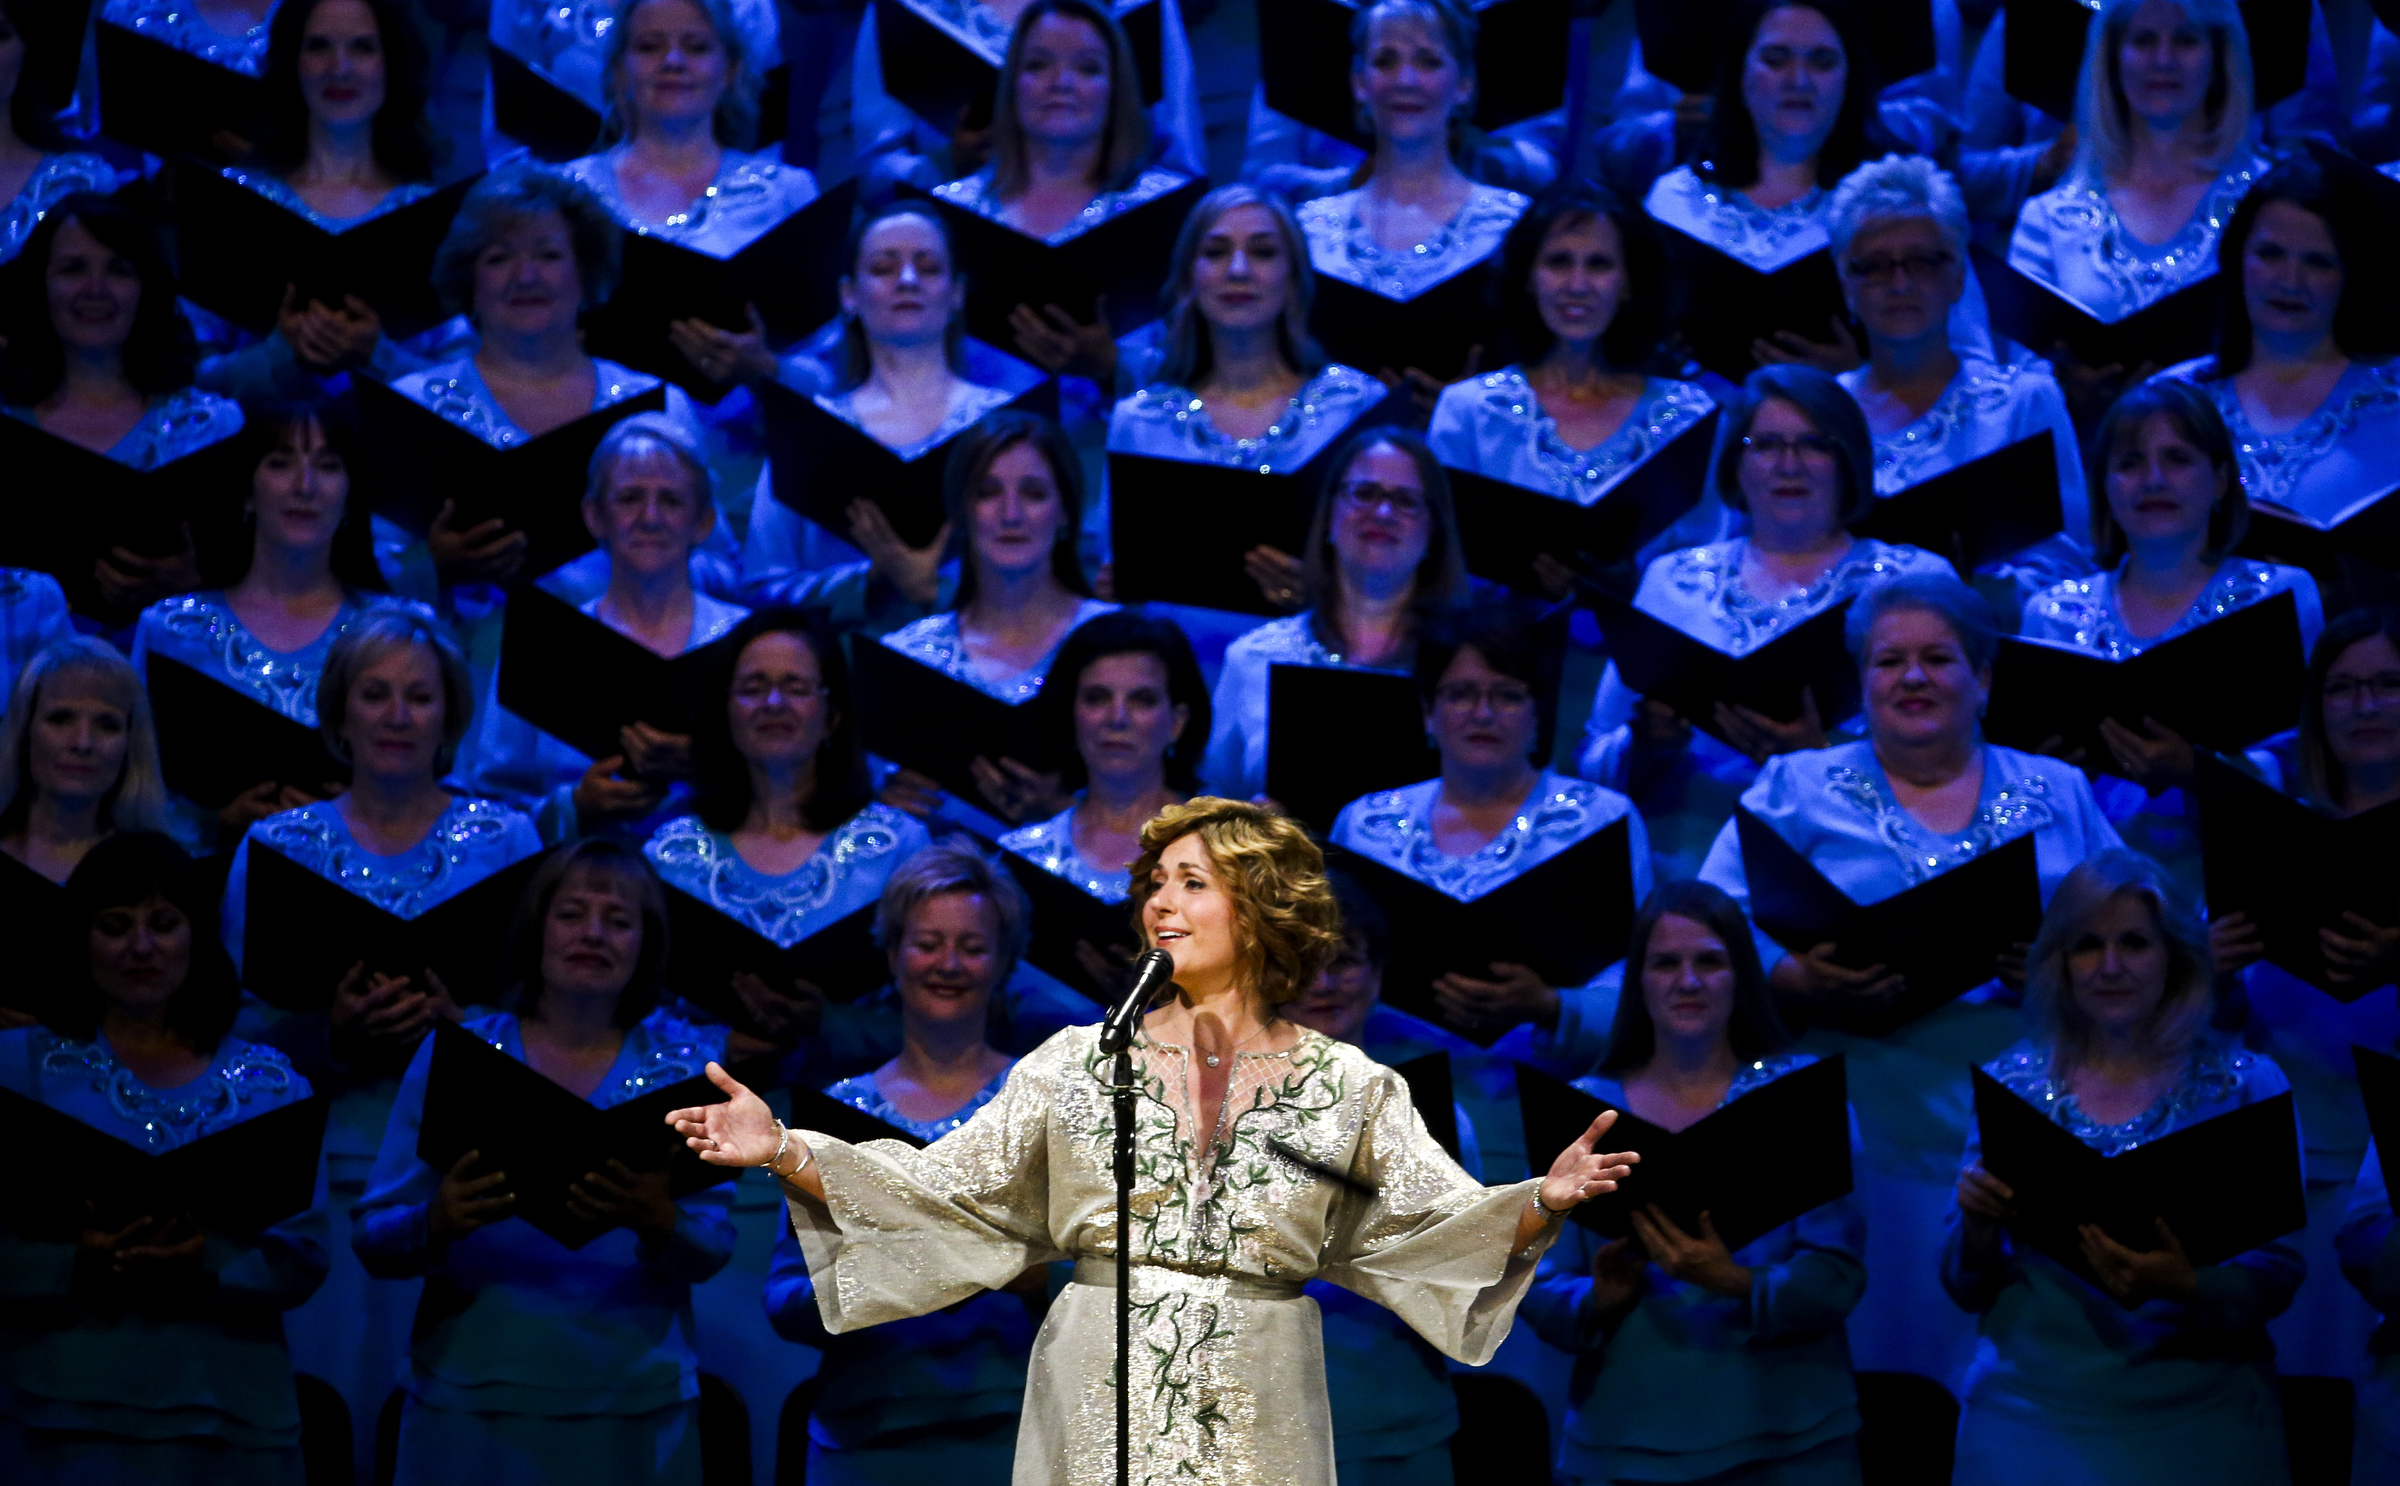 Sissel sings with heart at Tabernacle Choir's Pioneer Day